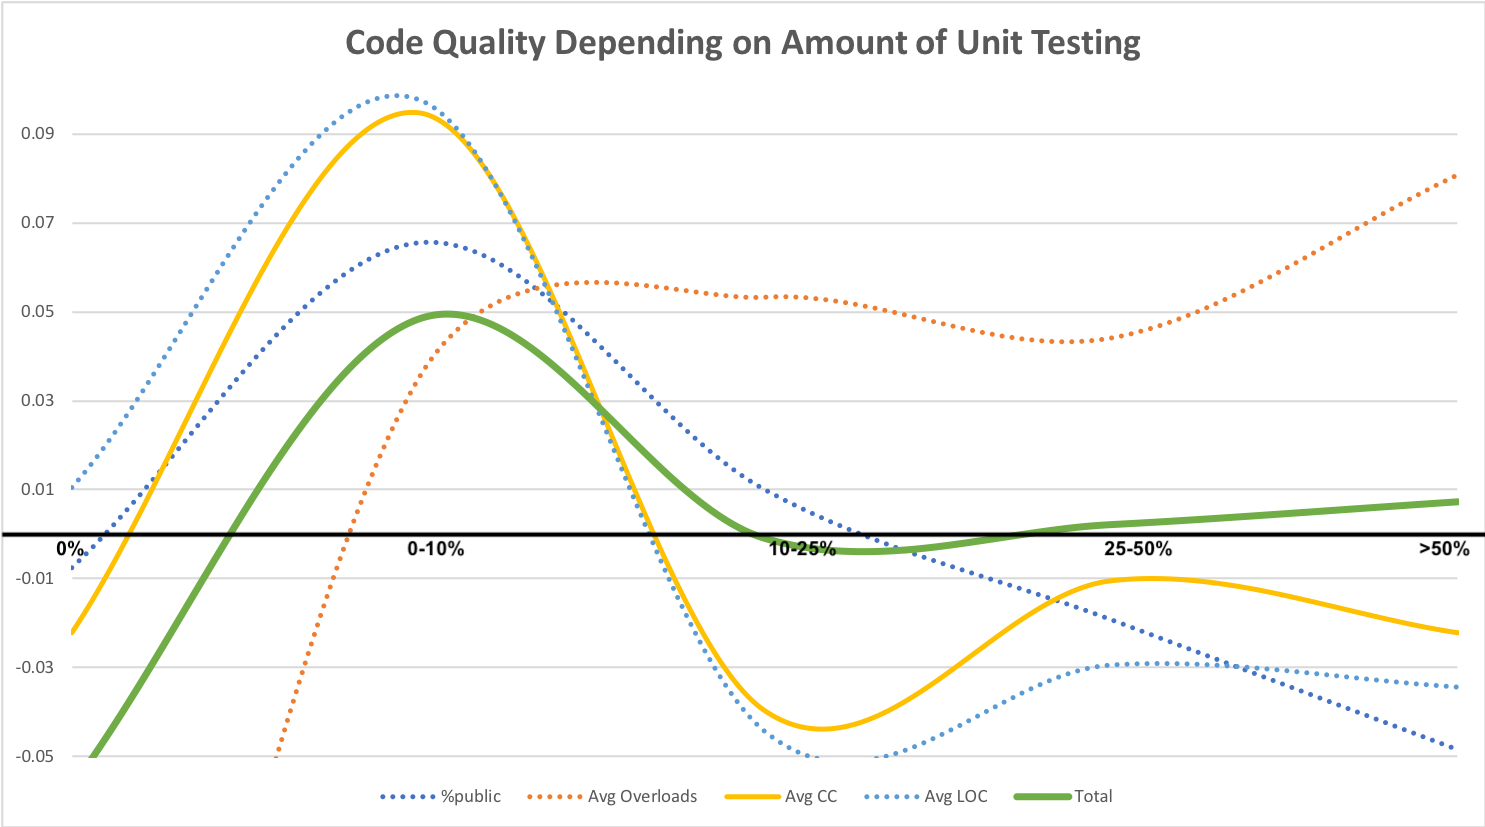 How Code Quality Depends on Amount of Unit Testing